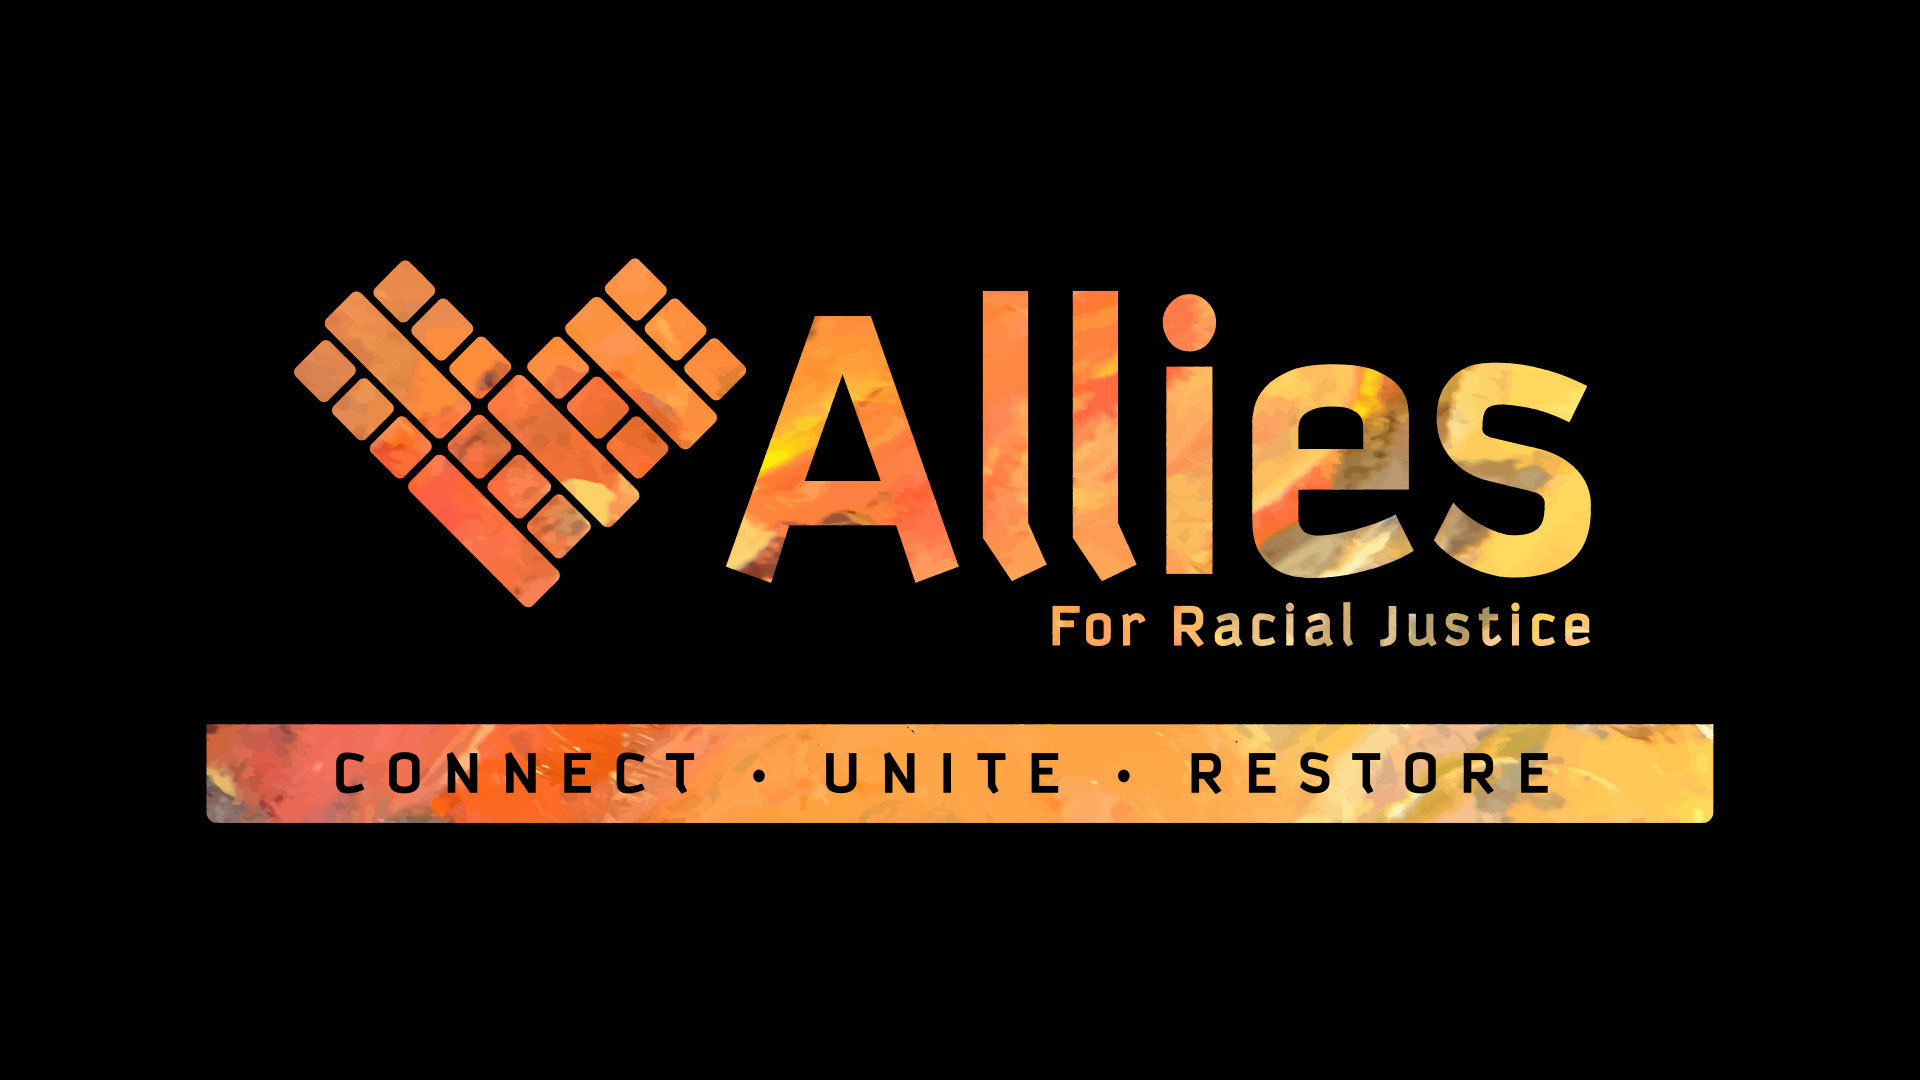 Allies for Racial Justice